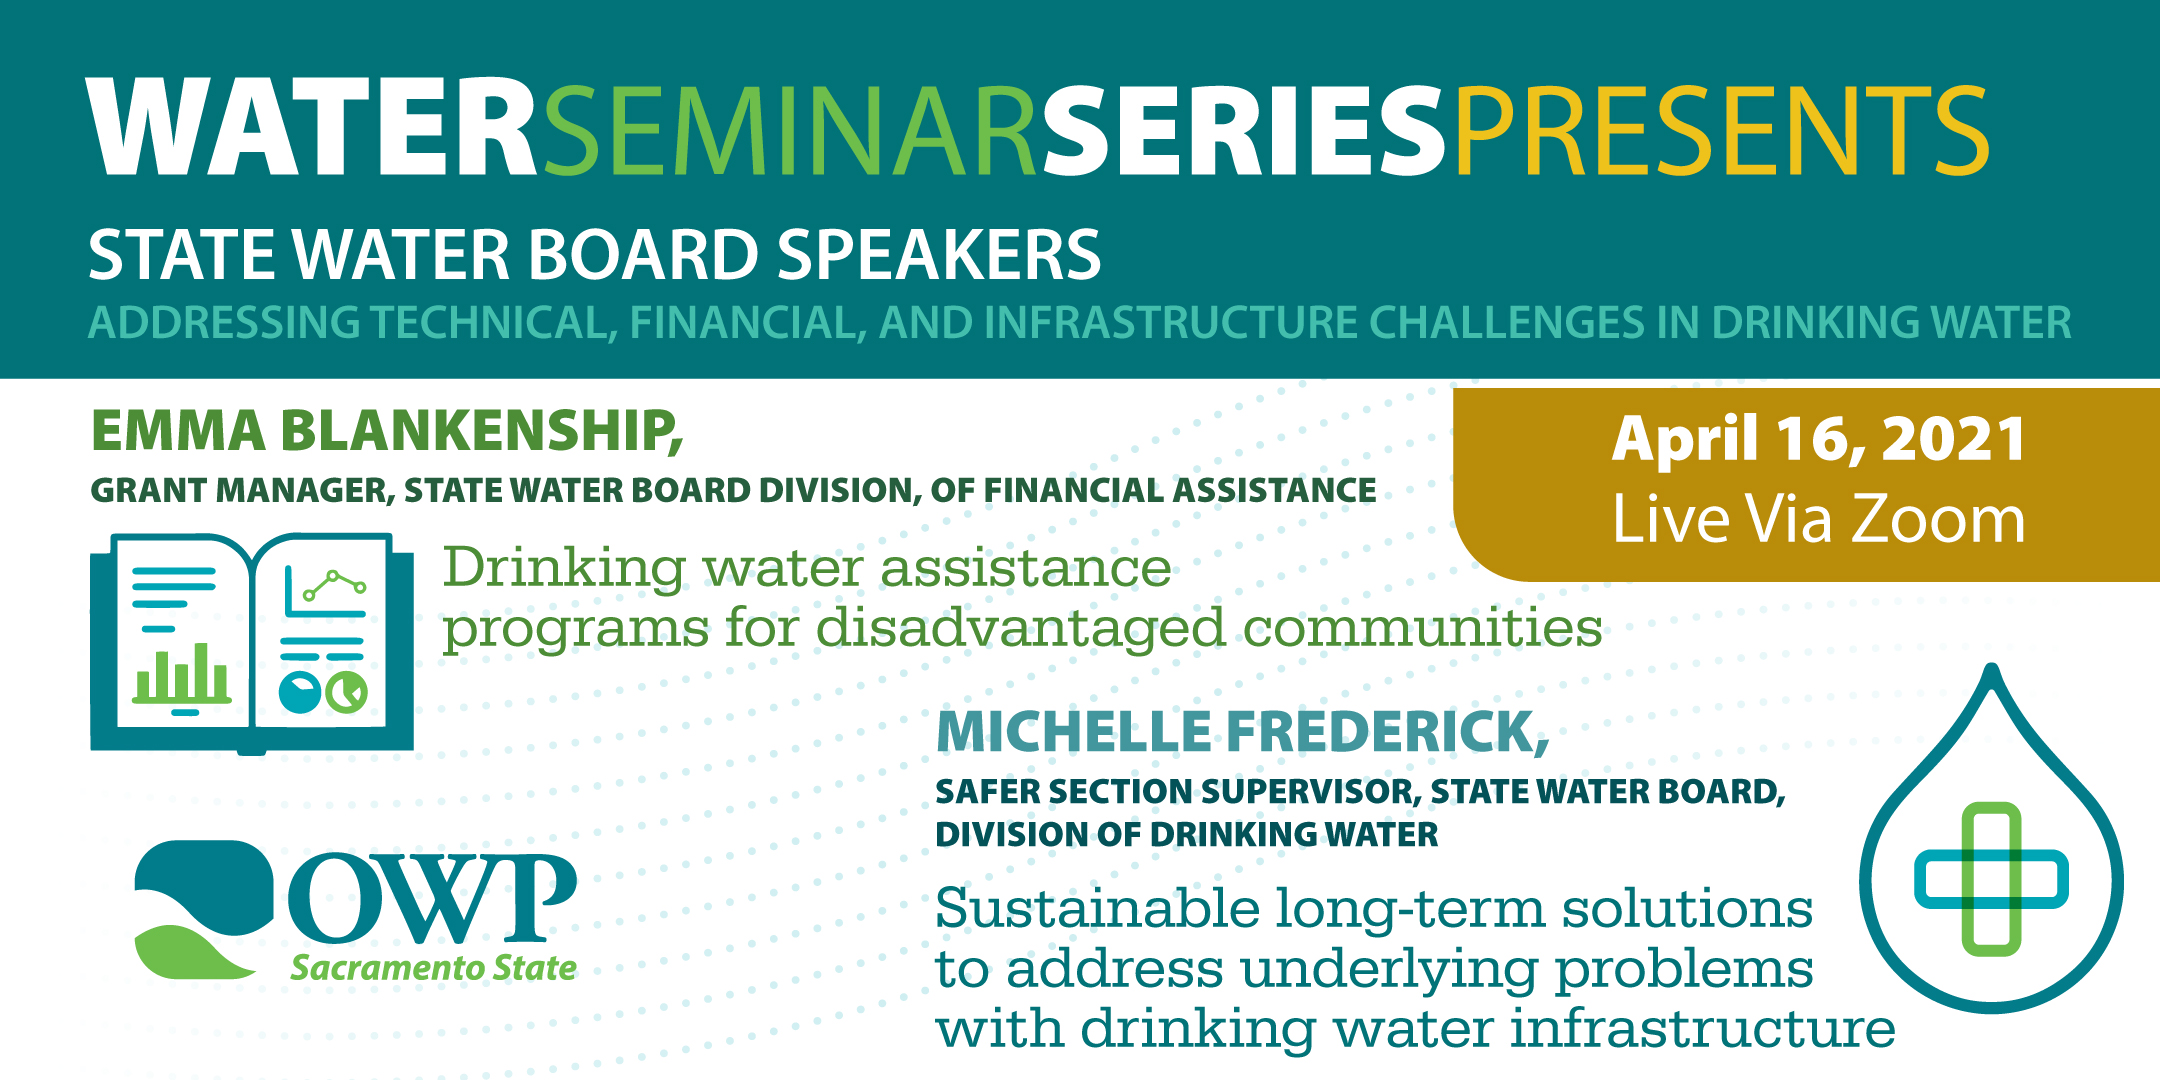 Water Seminar April 16, 2021, Sustainable Solutions to Drinking Water Challenges